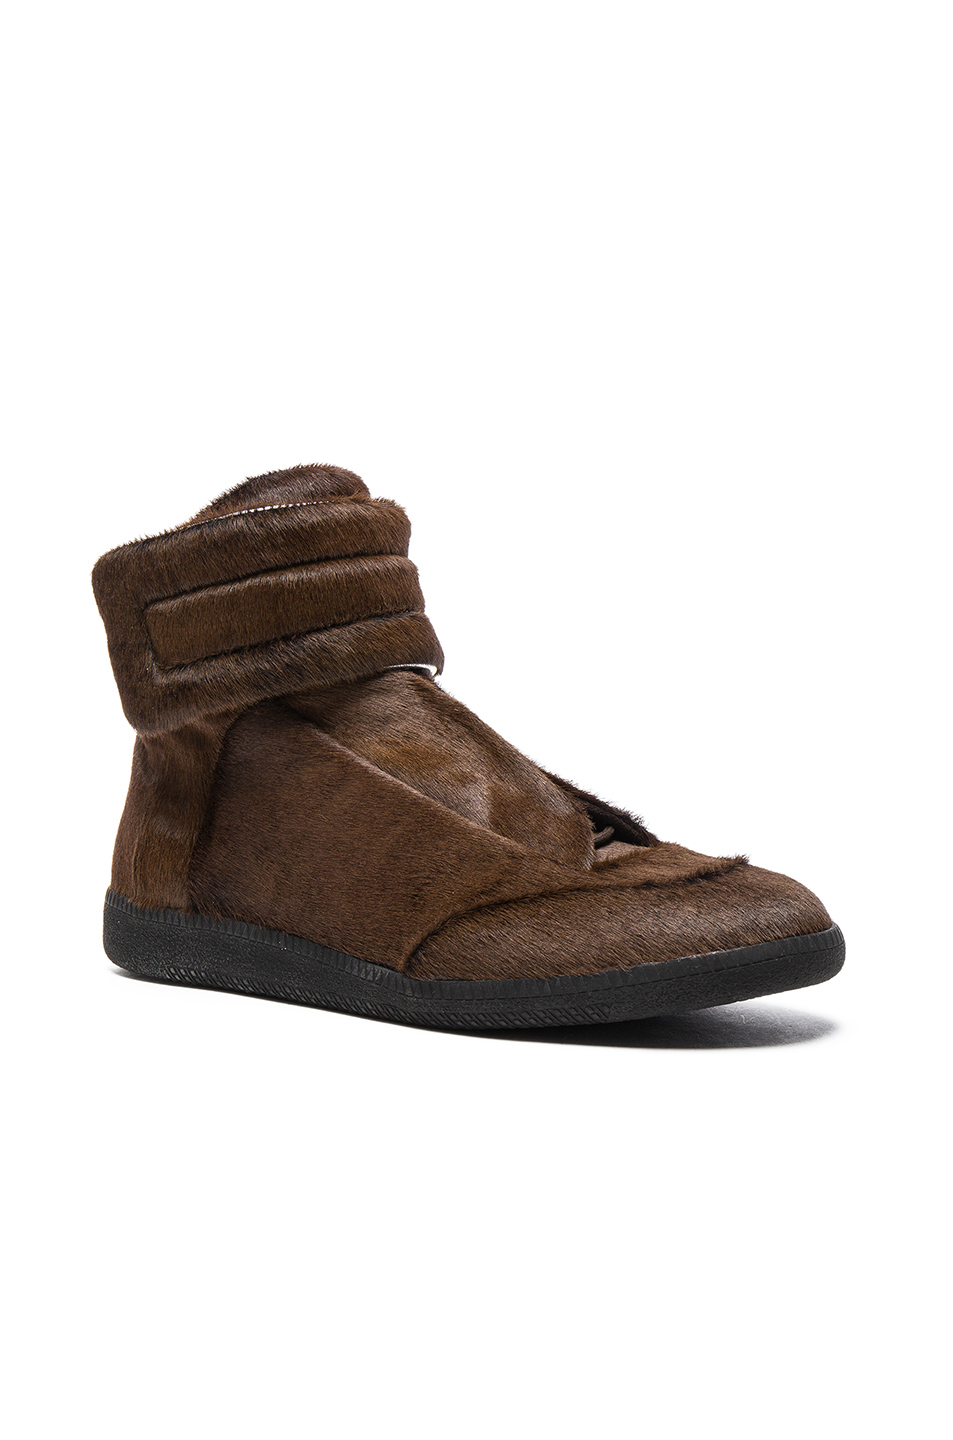 Maison Margiela Calf Hair & Suede Future High Tops in Brown